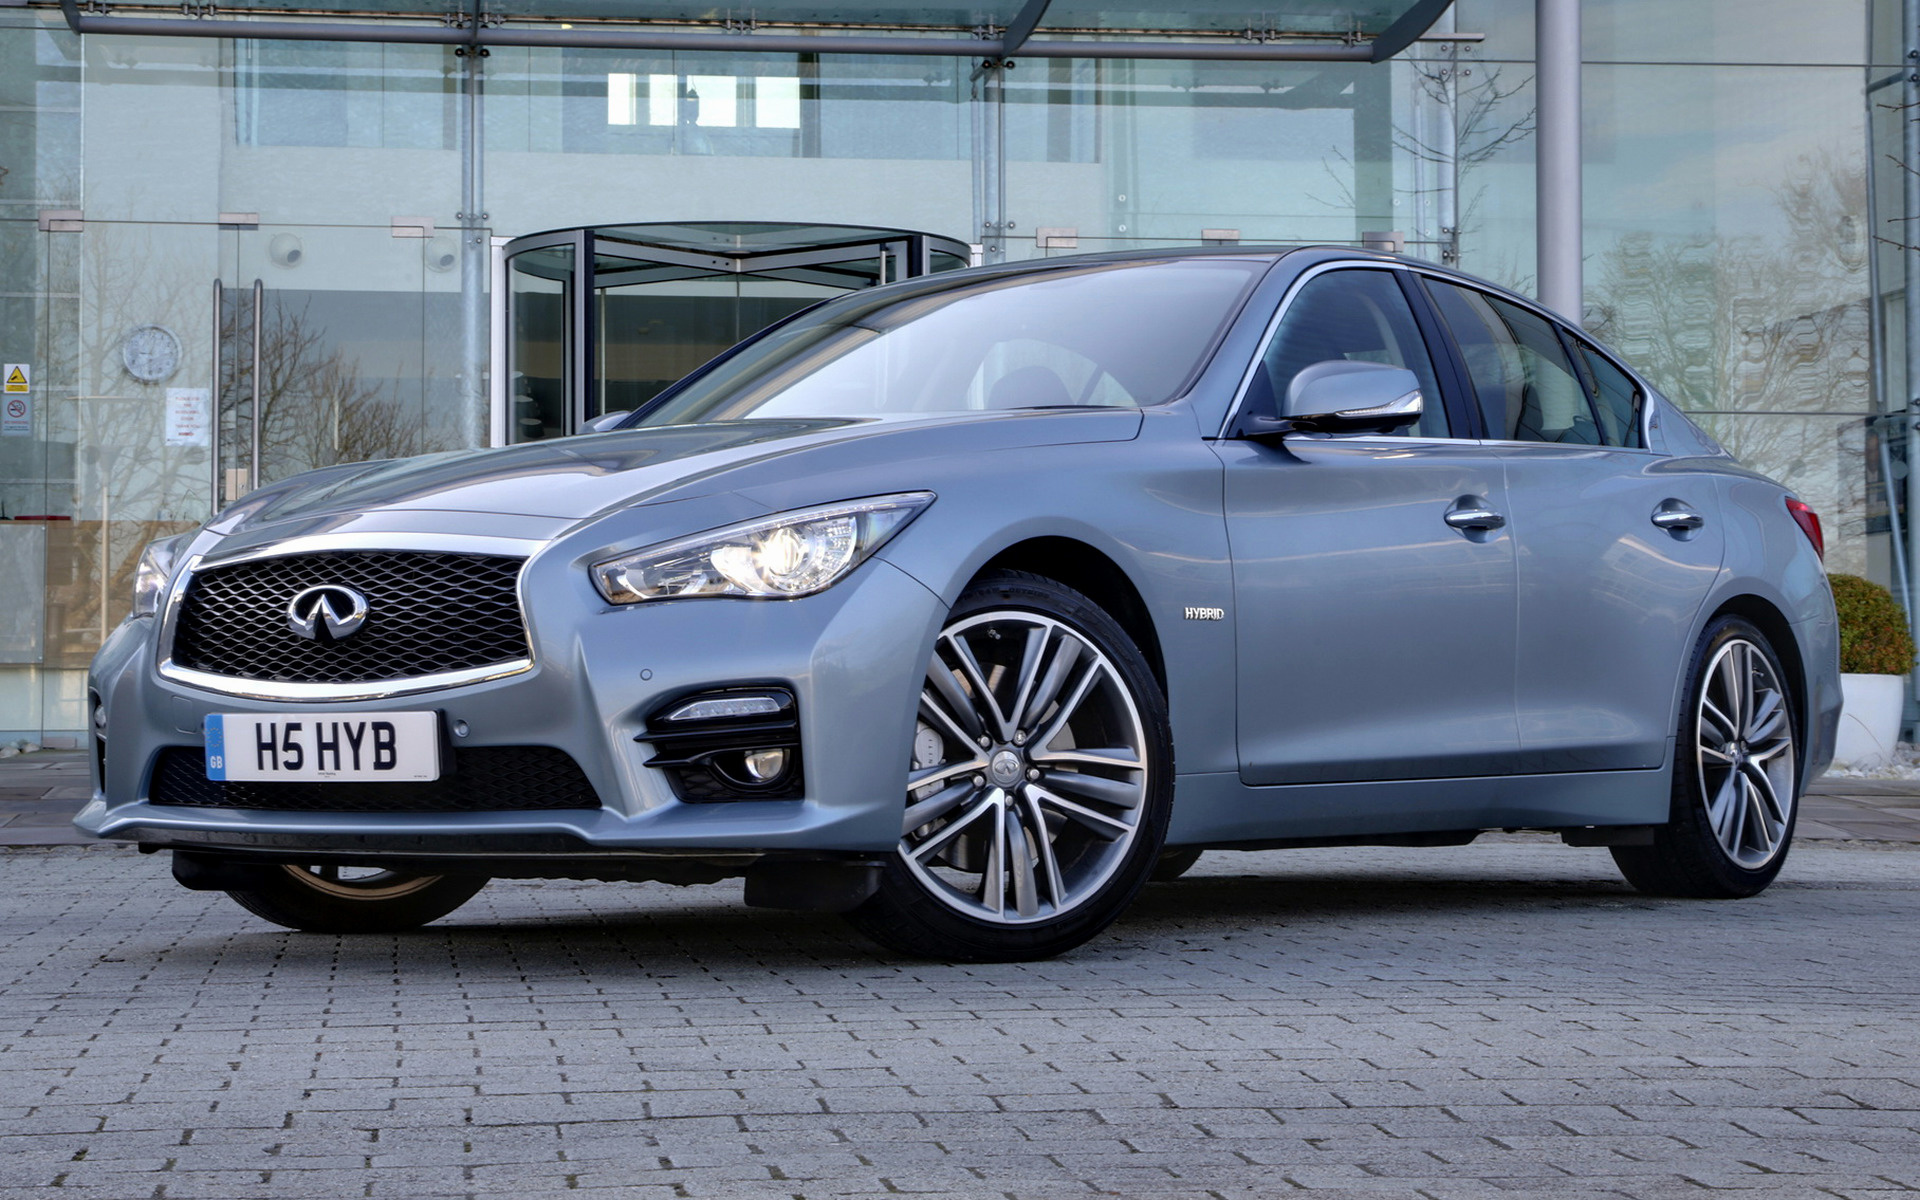 infiniti q50 sport hybrid 2014 uk wallpapers and hd. Black Bedroom Furniture Sets. Home Design Ideas